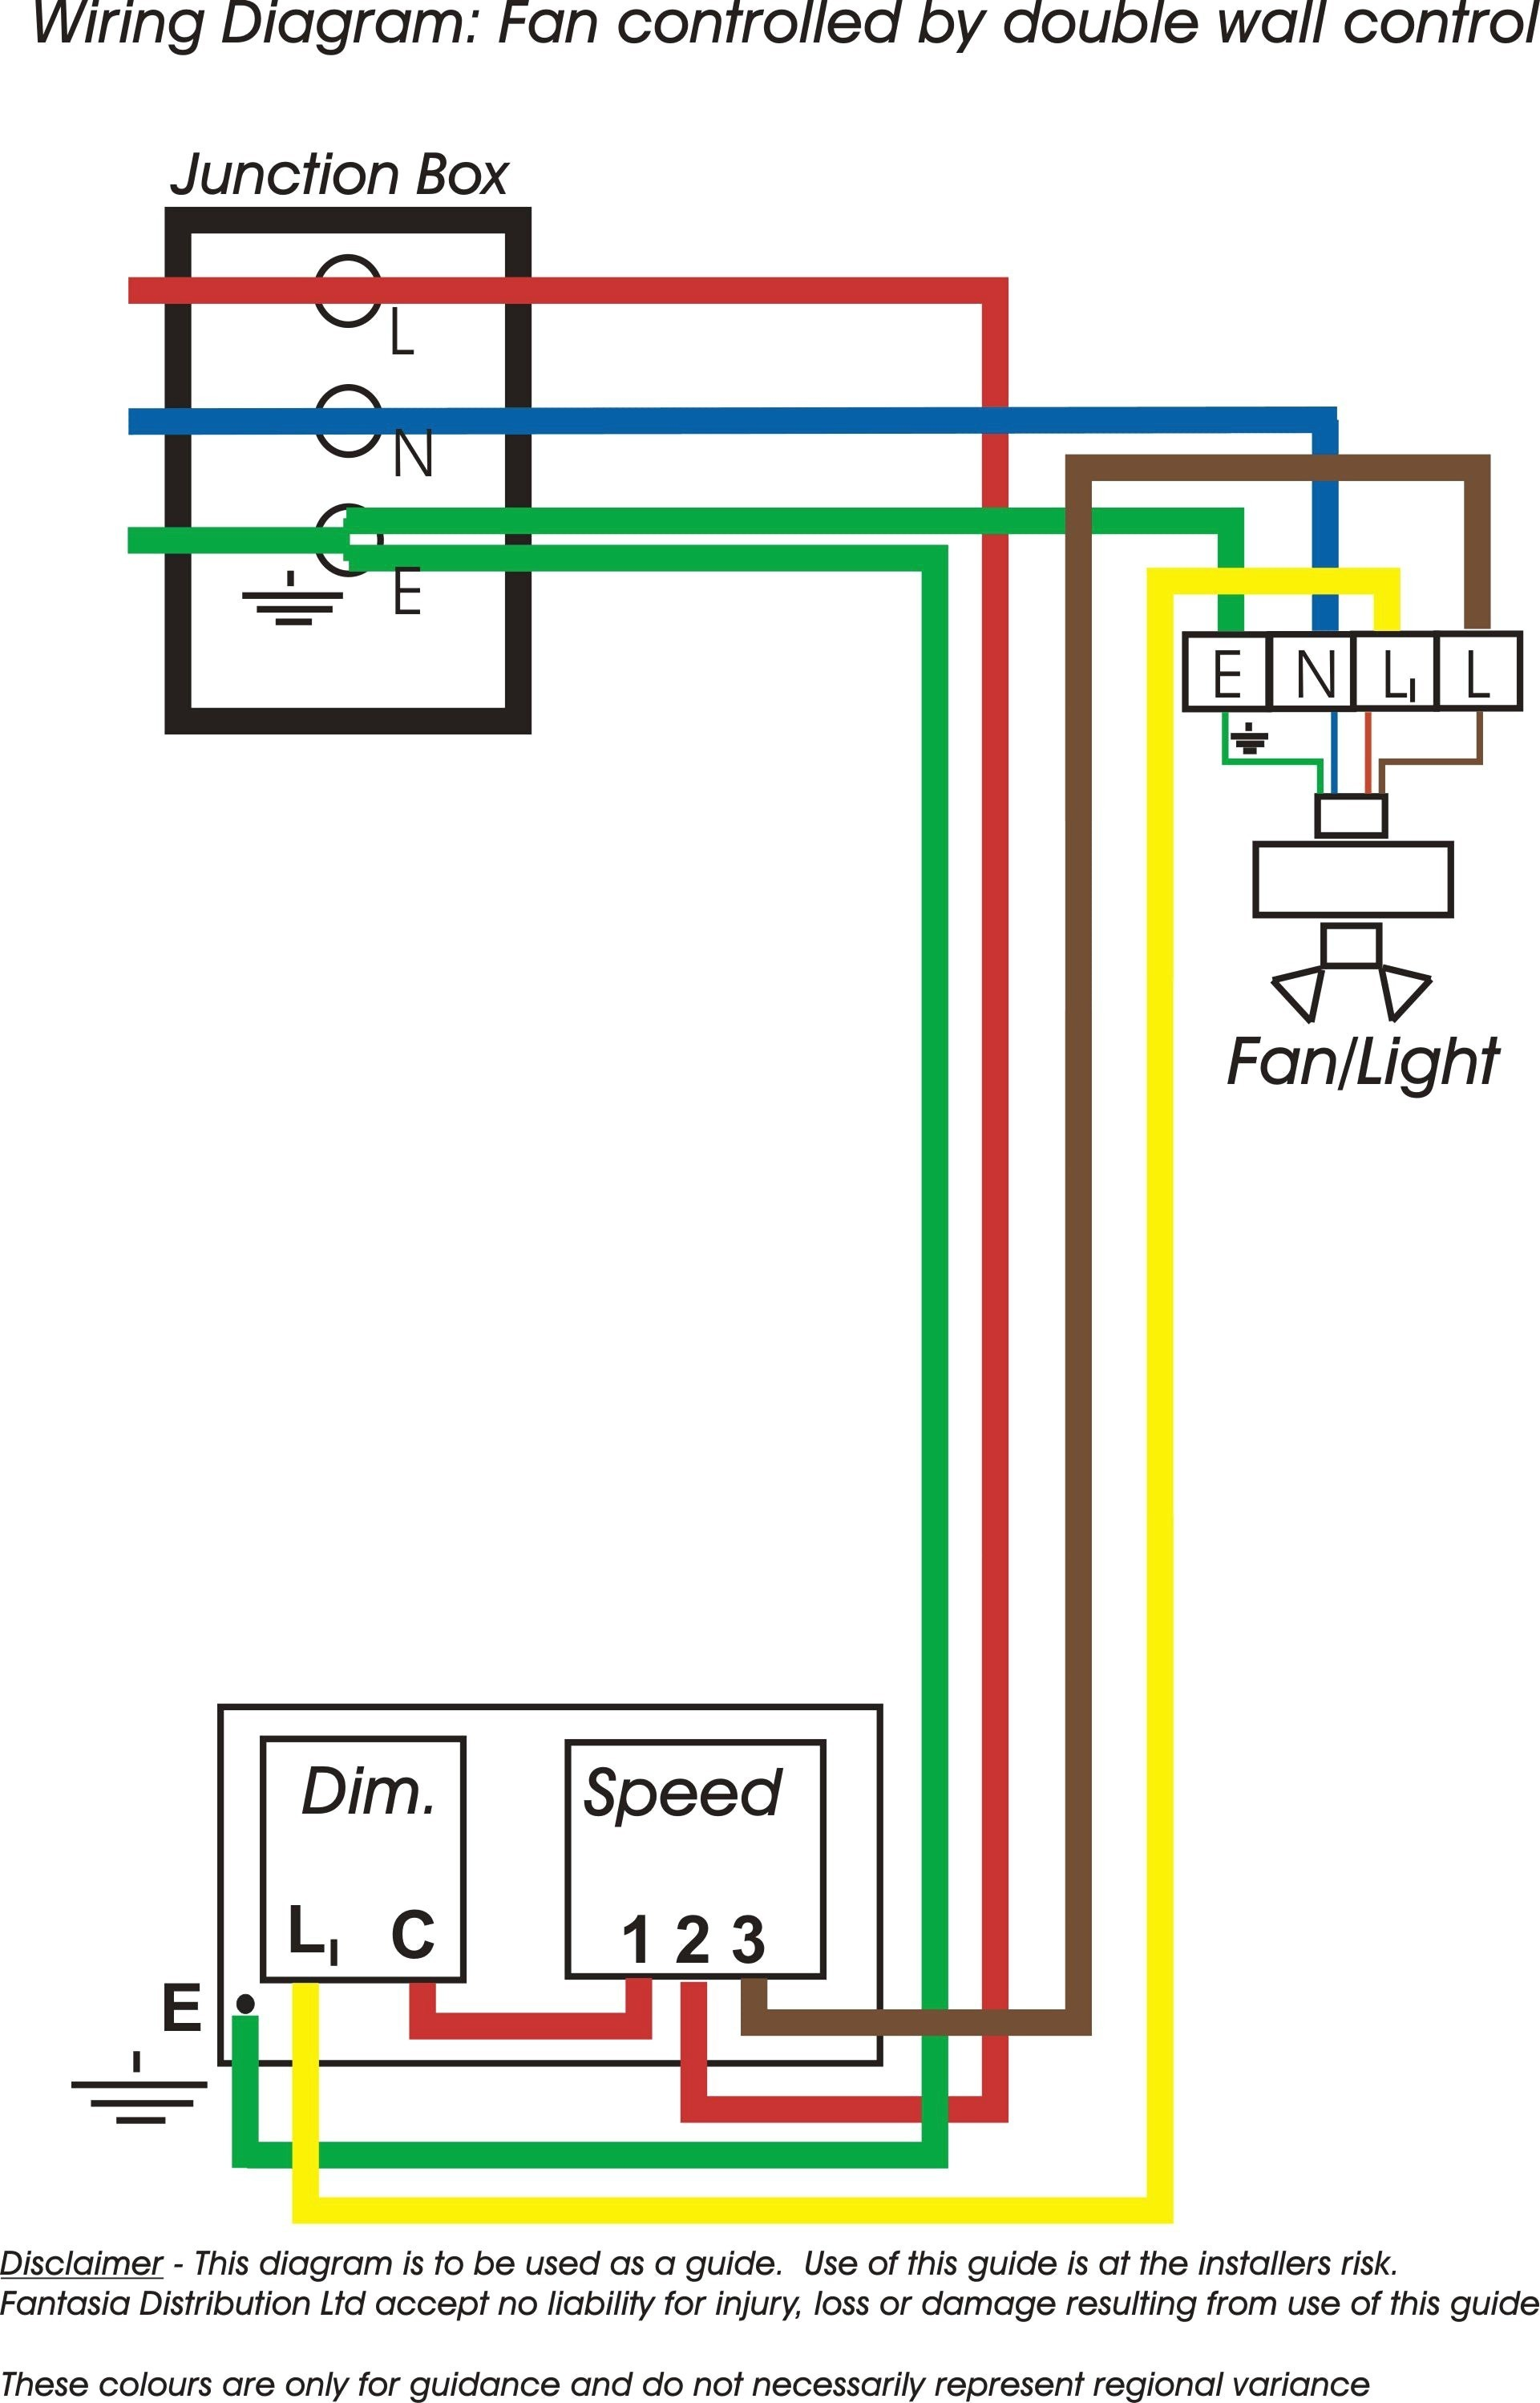 Wiring Diagram for Lights In Parallel Inspirationa Recessed Lighting Wiring  Daisy Chain Wiring Recessed Light How